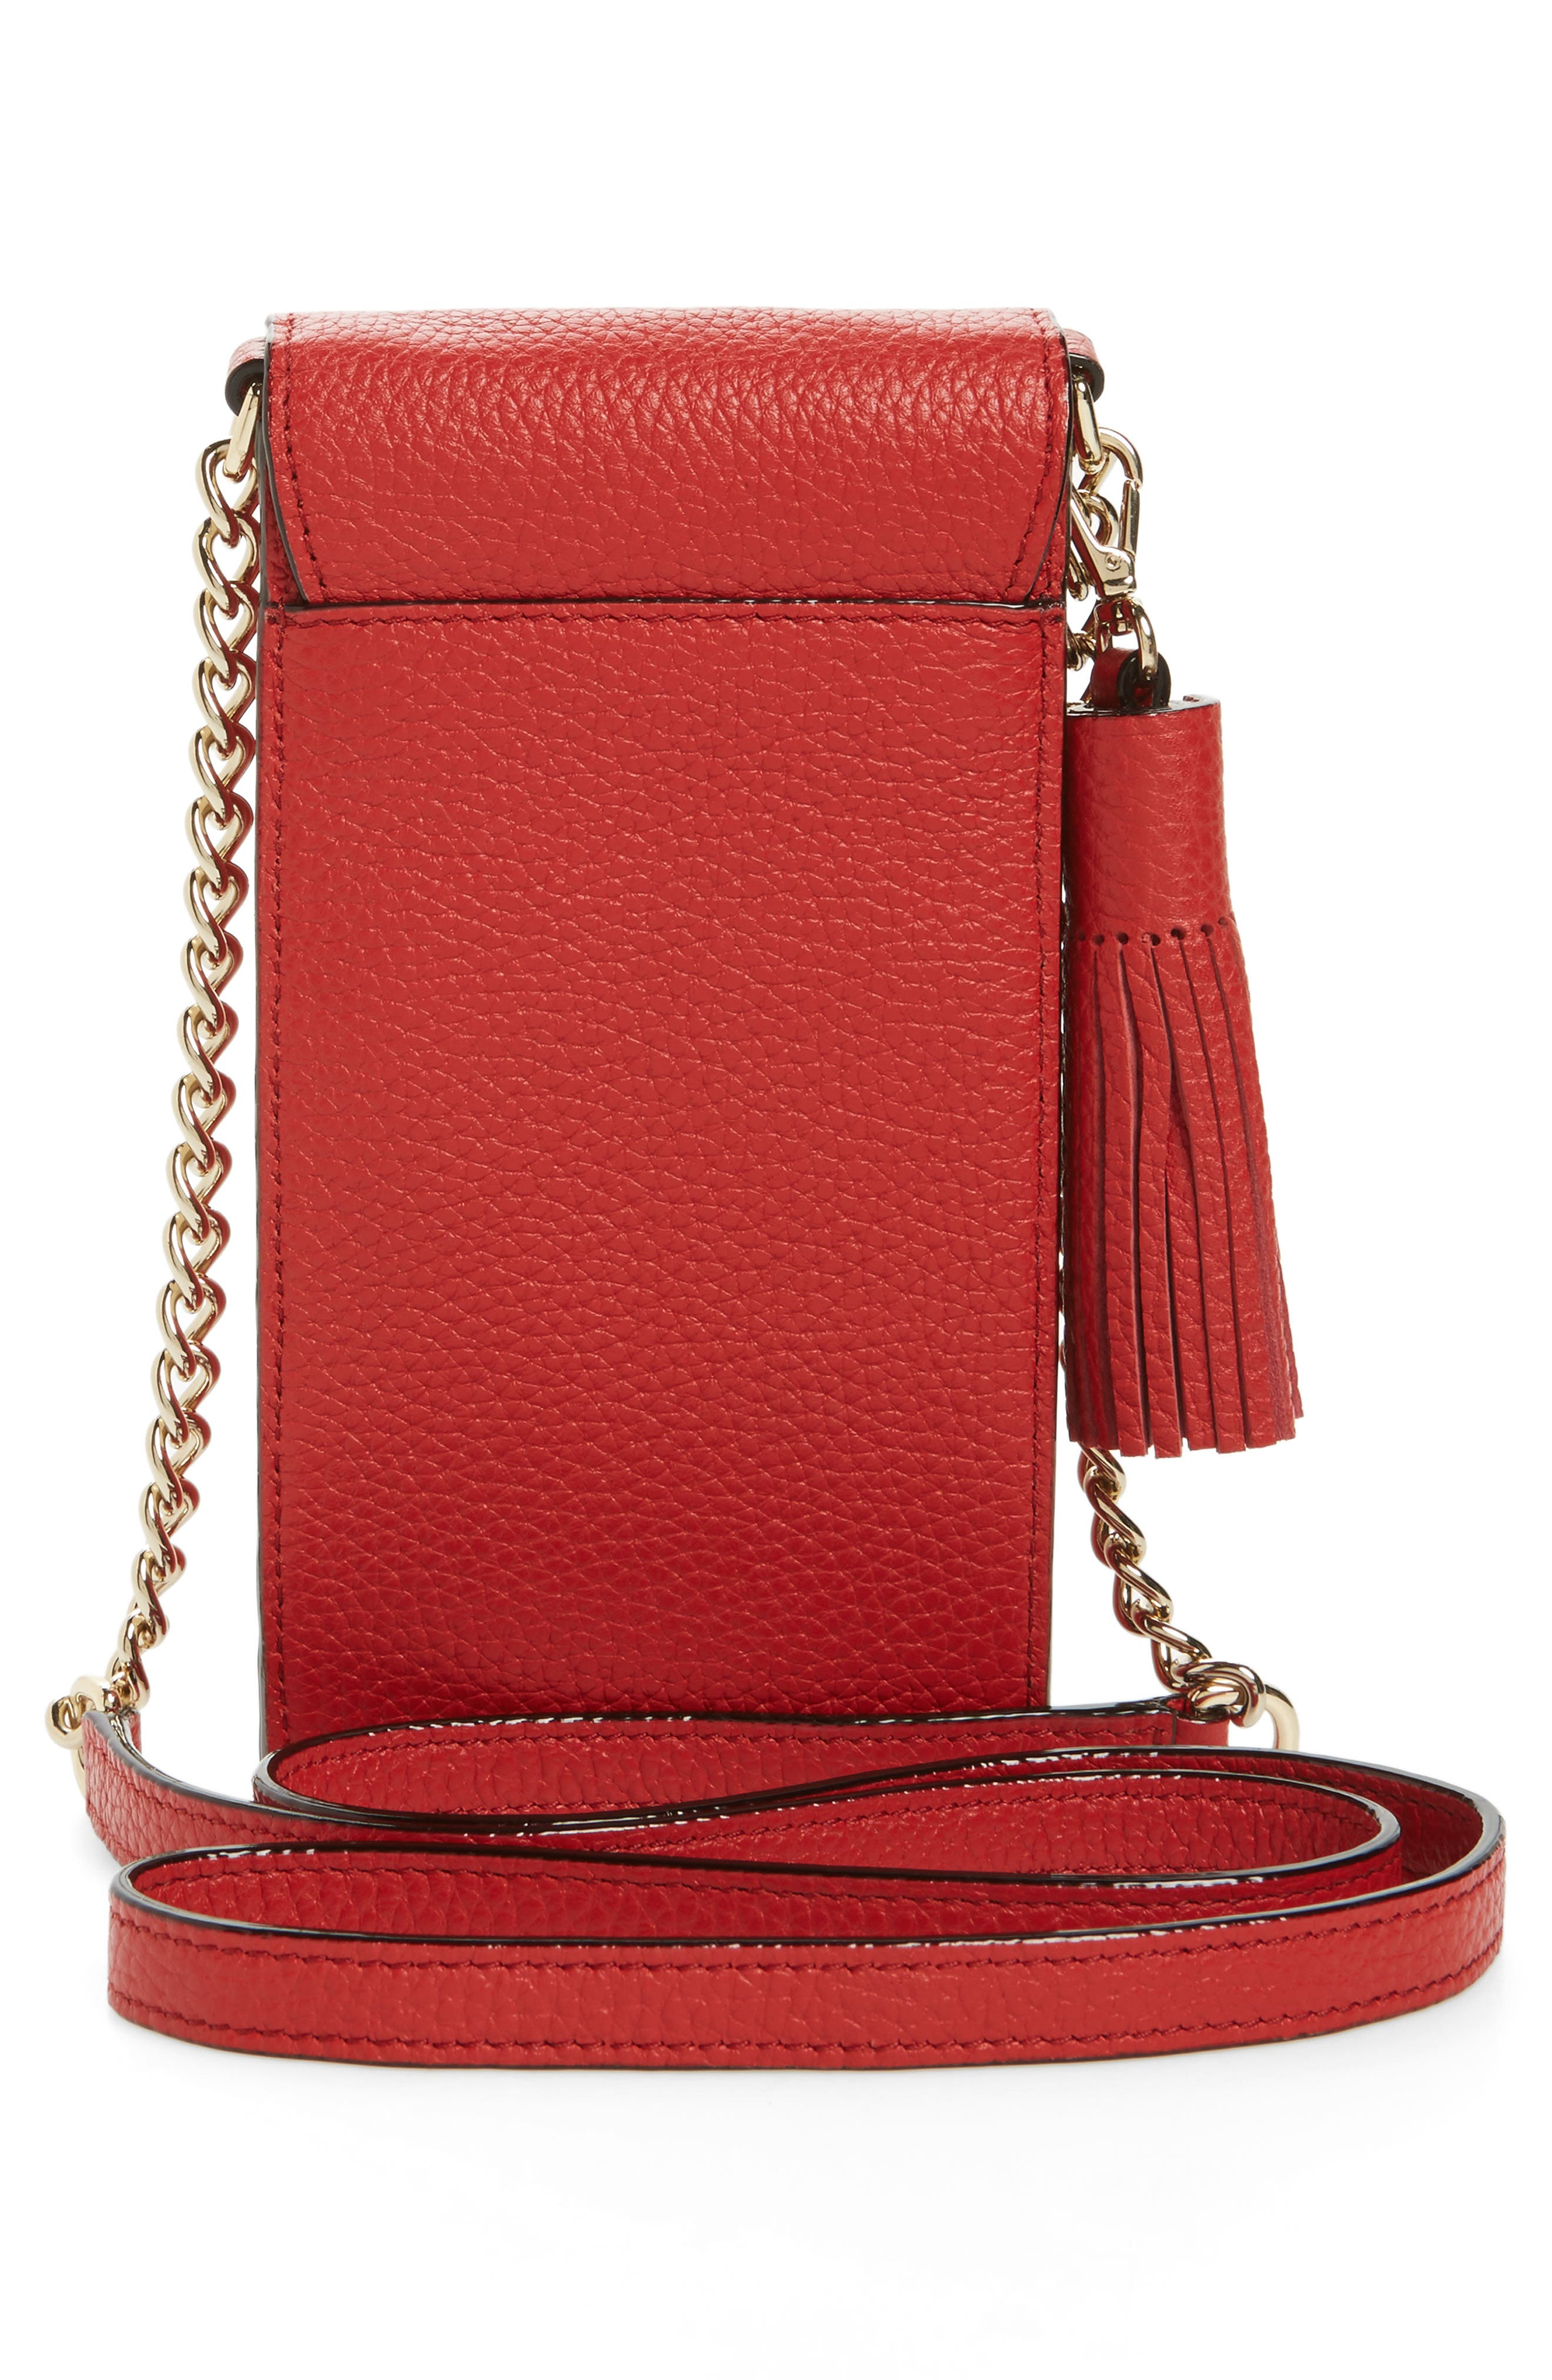 ,                             north/south leather smartphone crossbody bag,                             Alternate thumbnail 28, color,                             631